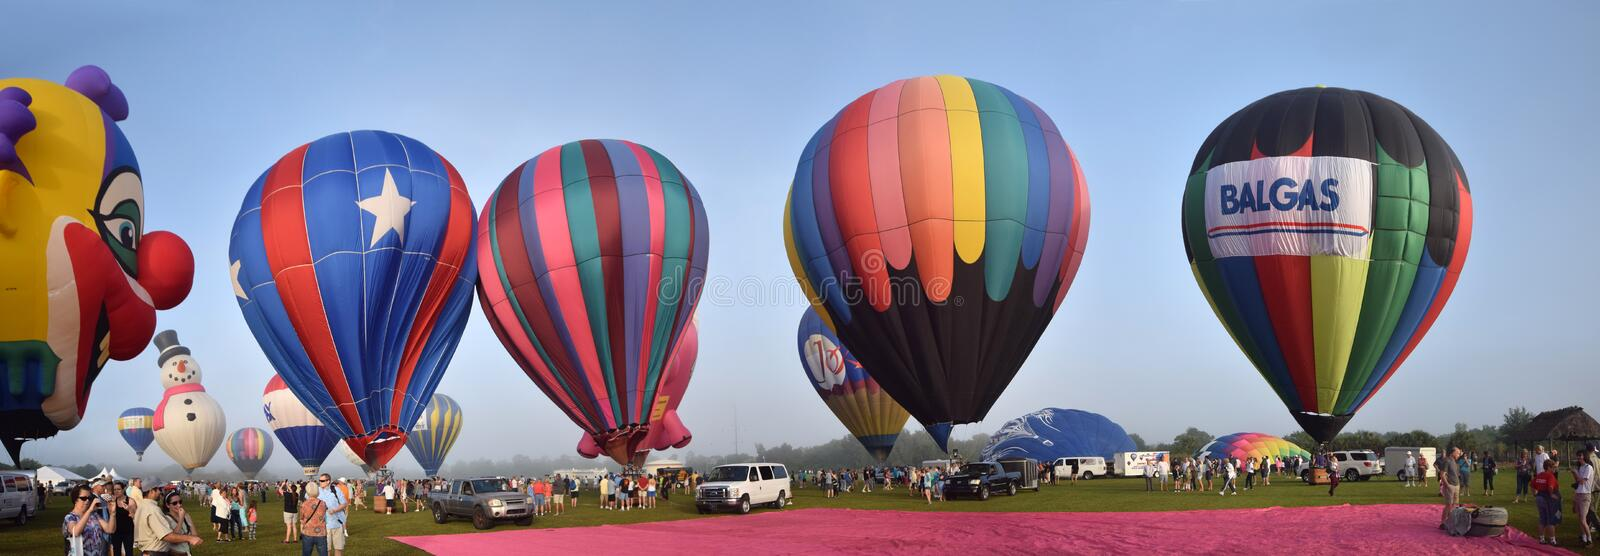 Hot air ballons in early morning panoramic view stock images